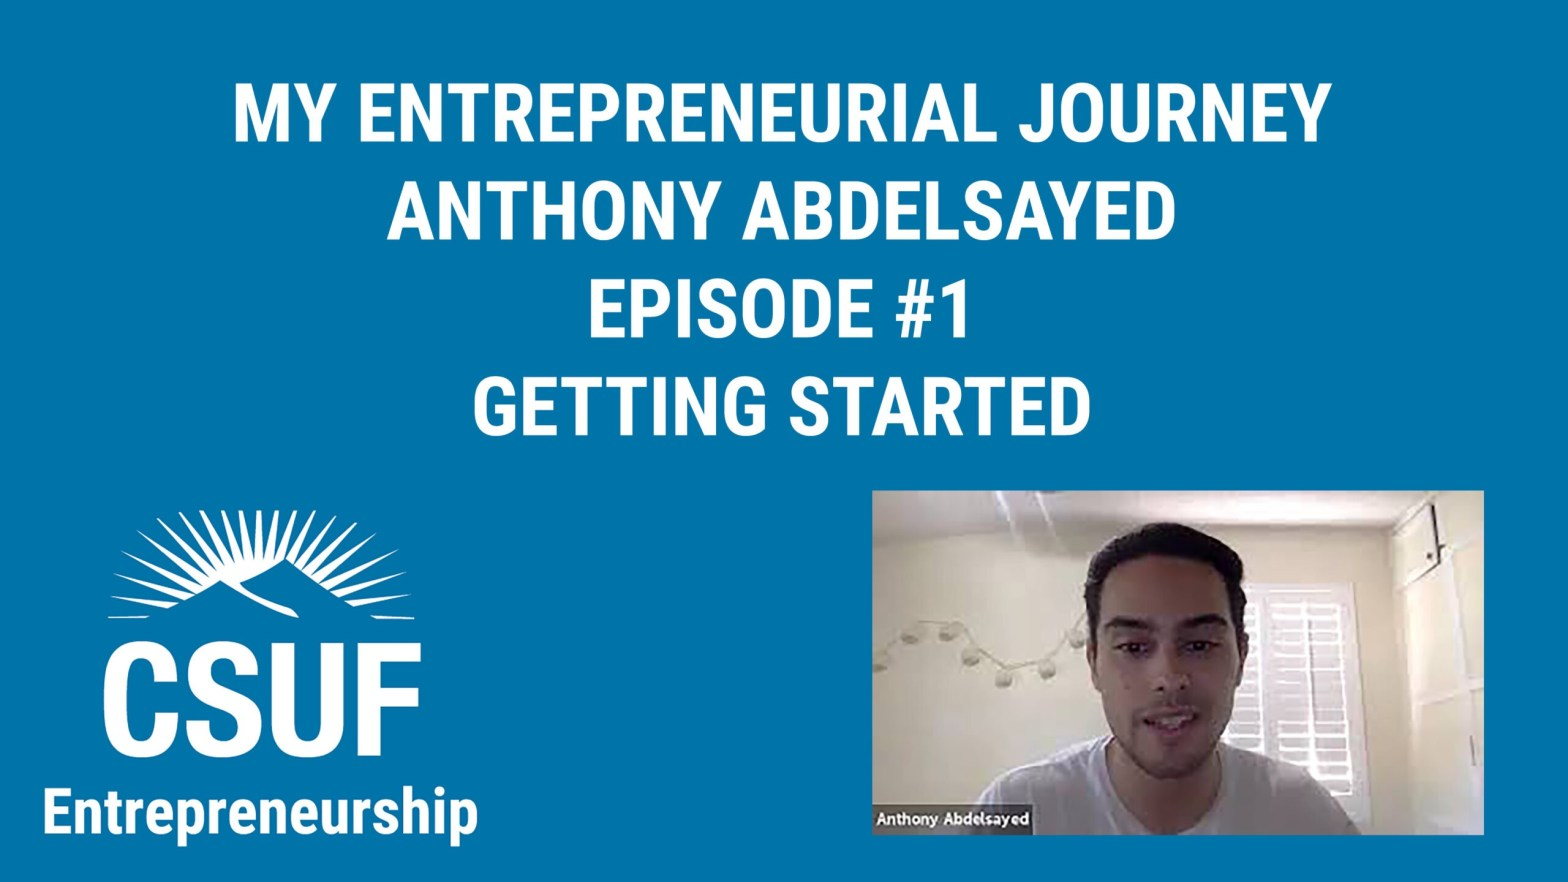 Anthony Abdelsayed Entrepreneurial Journey episode 1